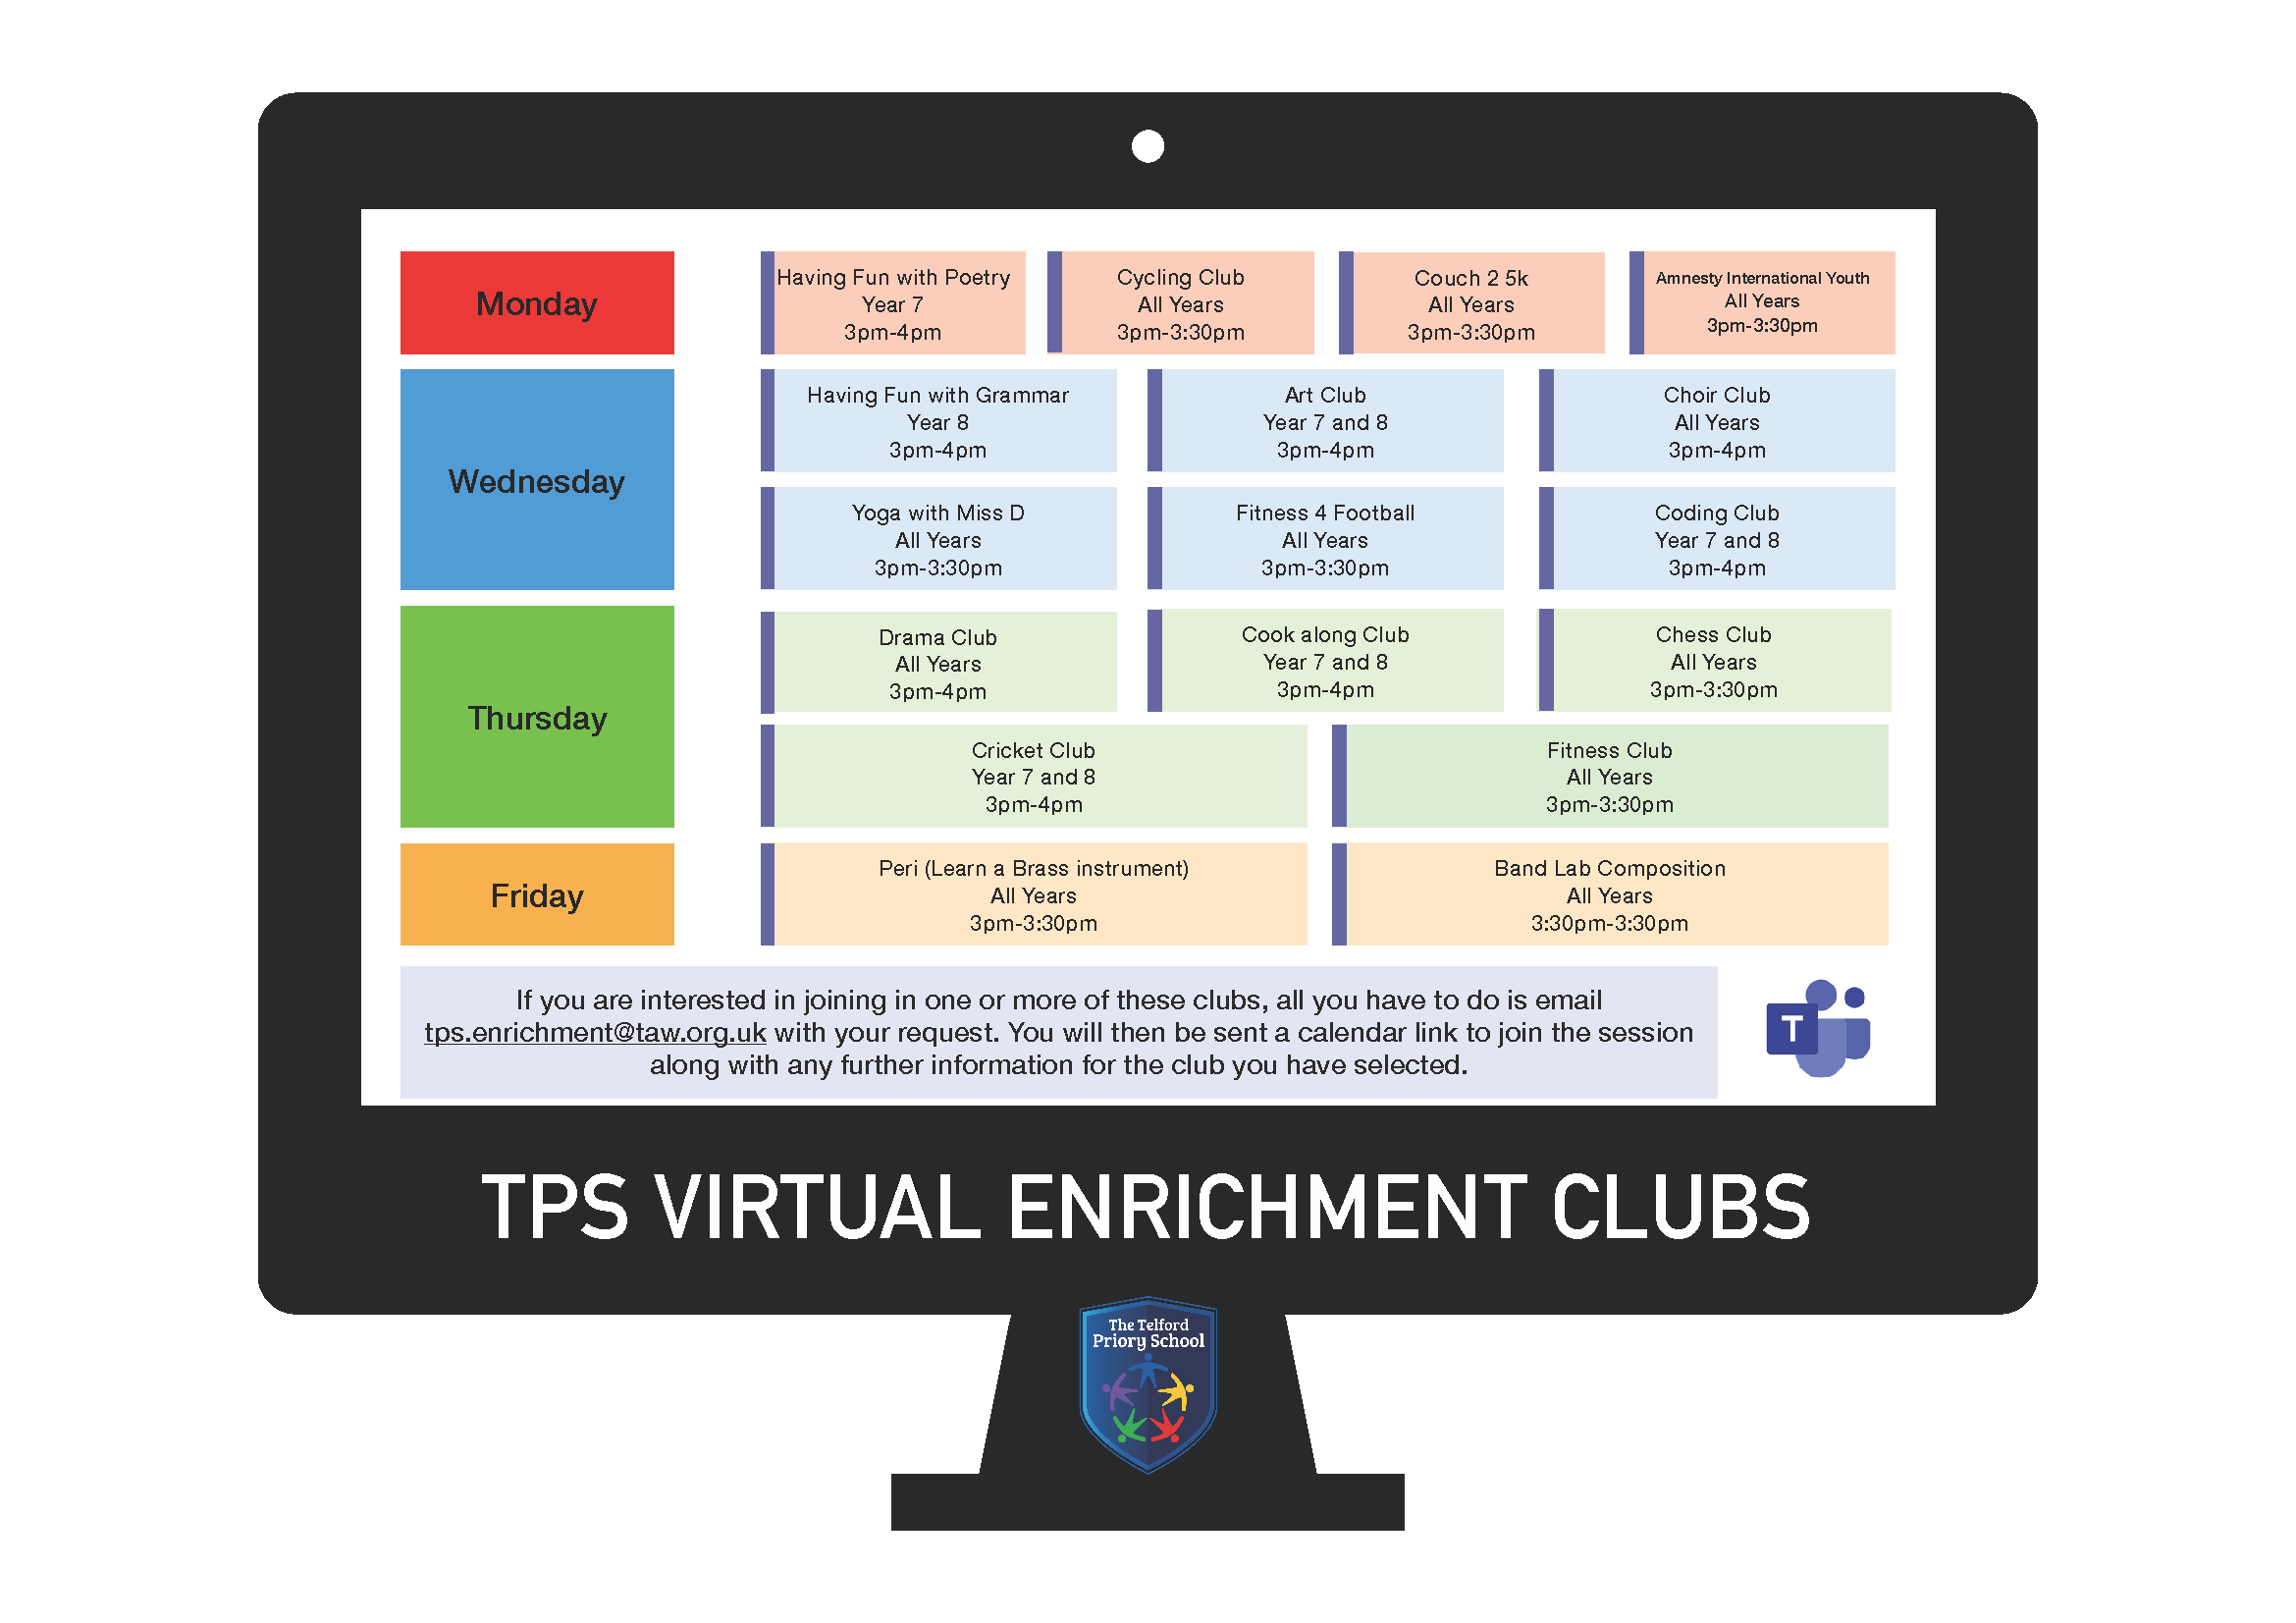 TPS_Virtual_Enrichment_Clubs